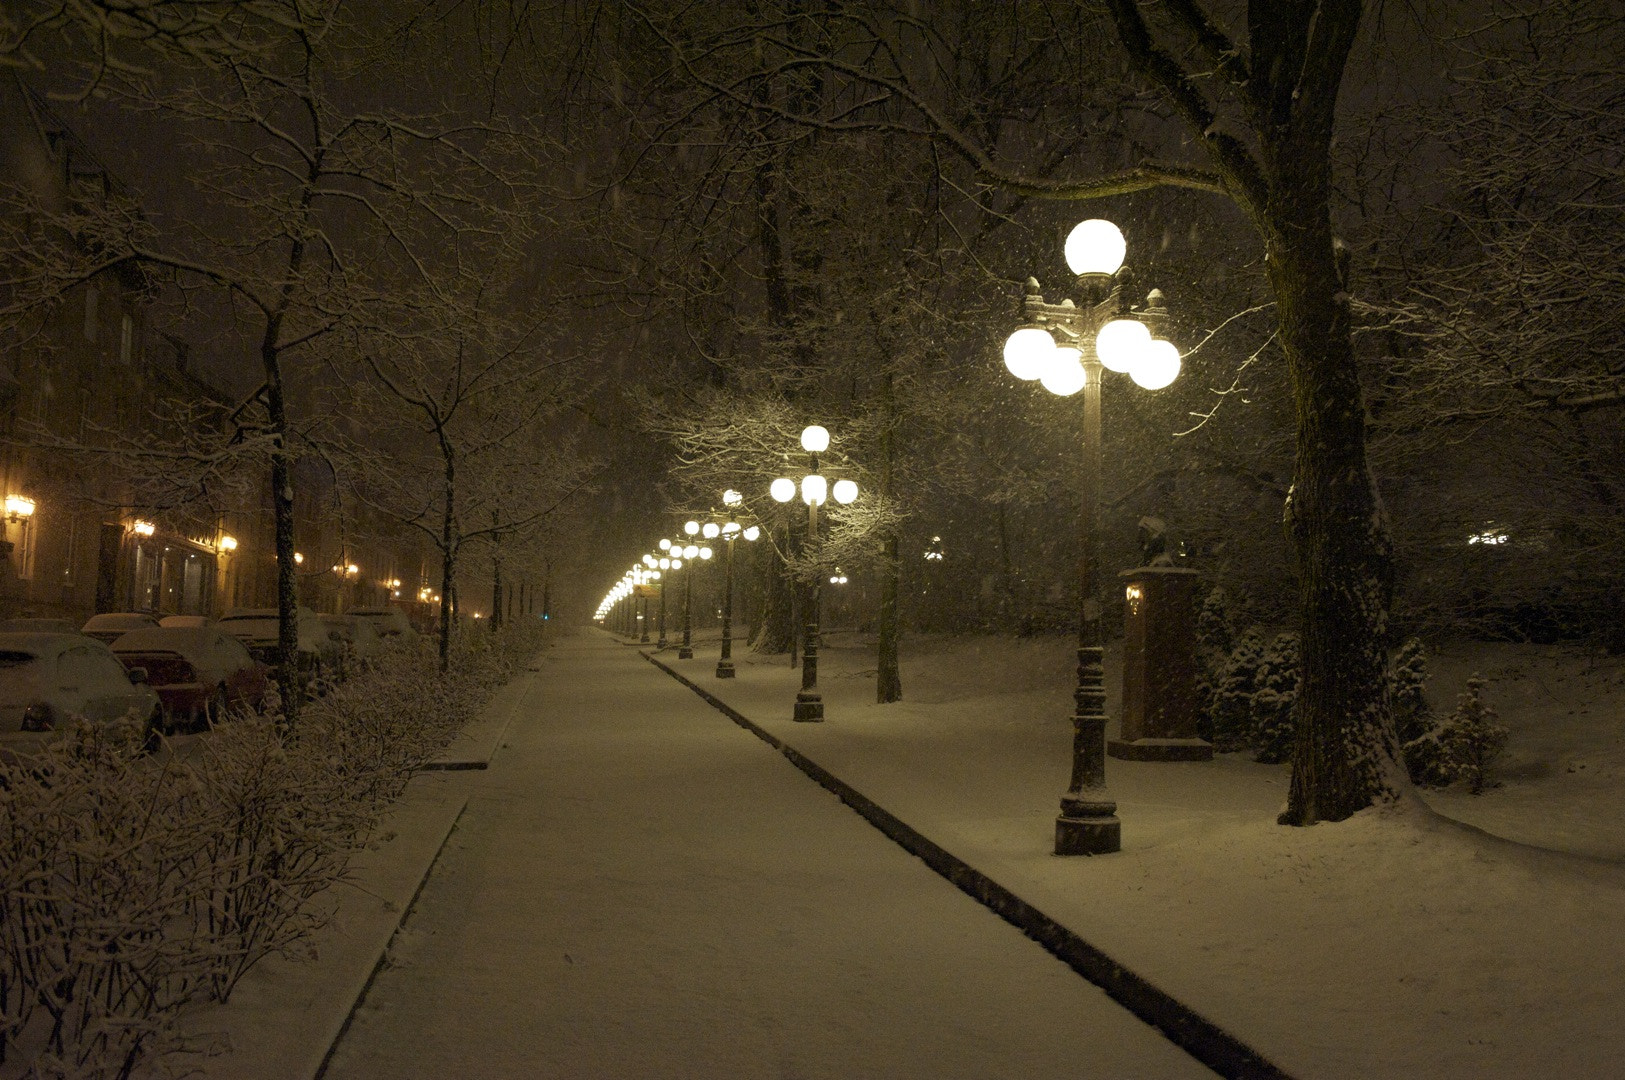 Photograph A snowy street in Québec city by Marc Dallaire on 500px